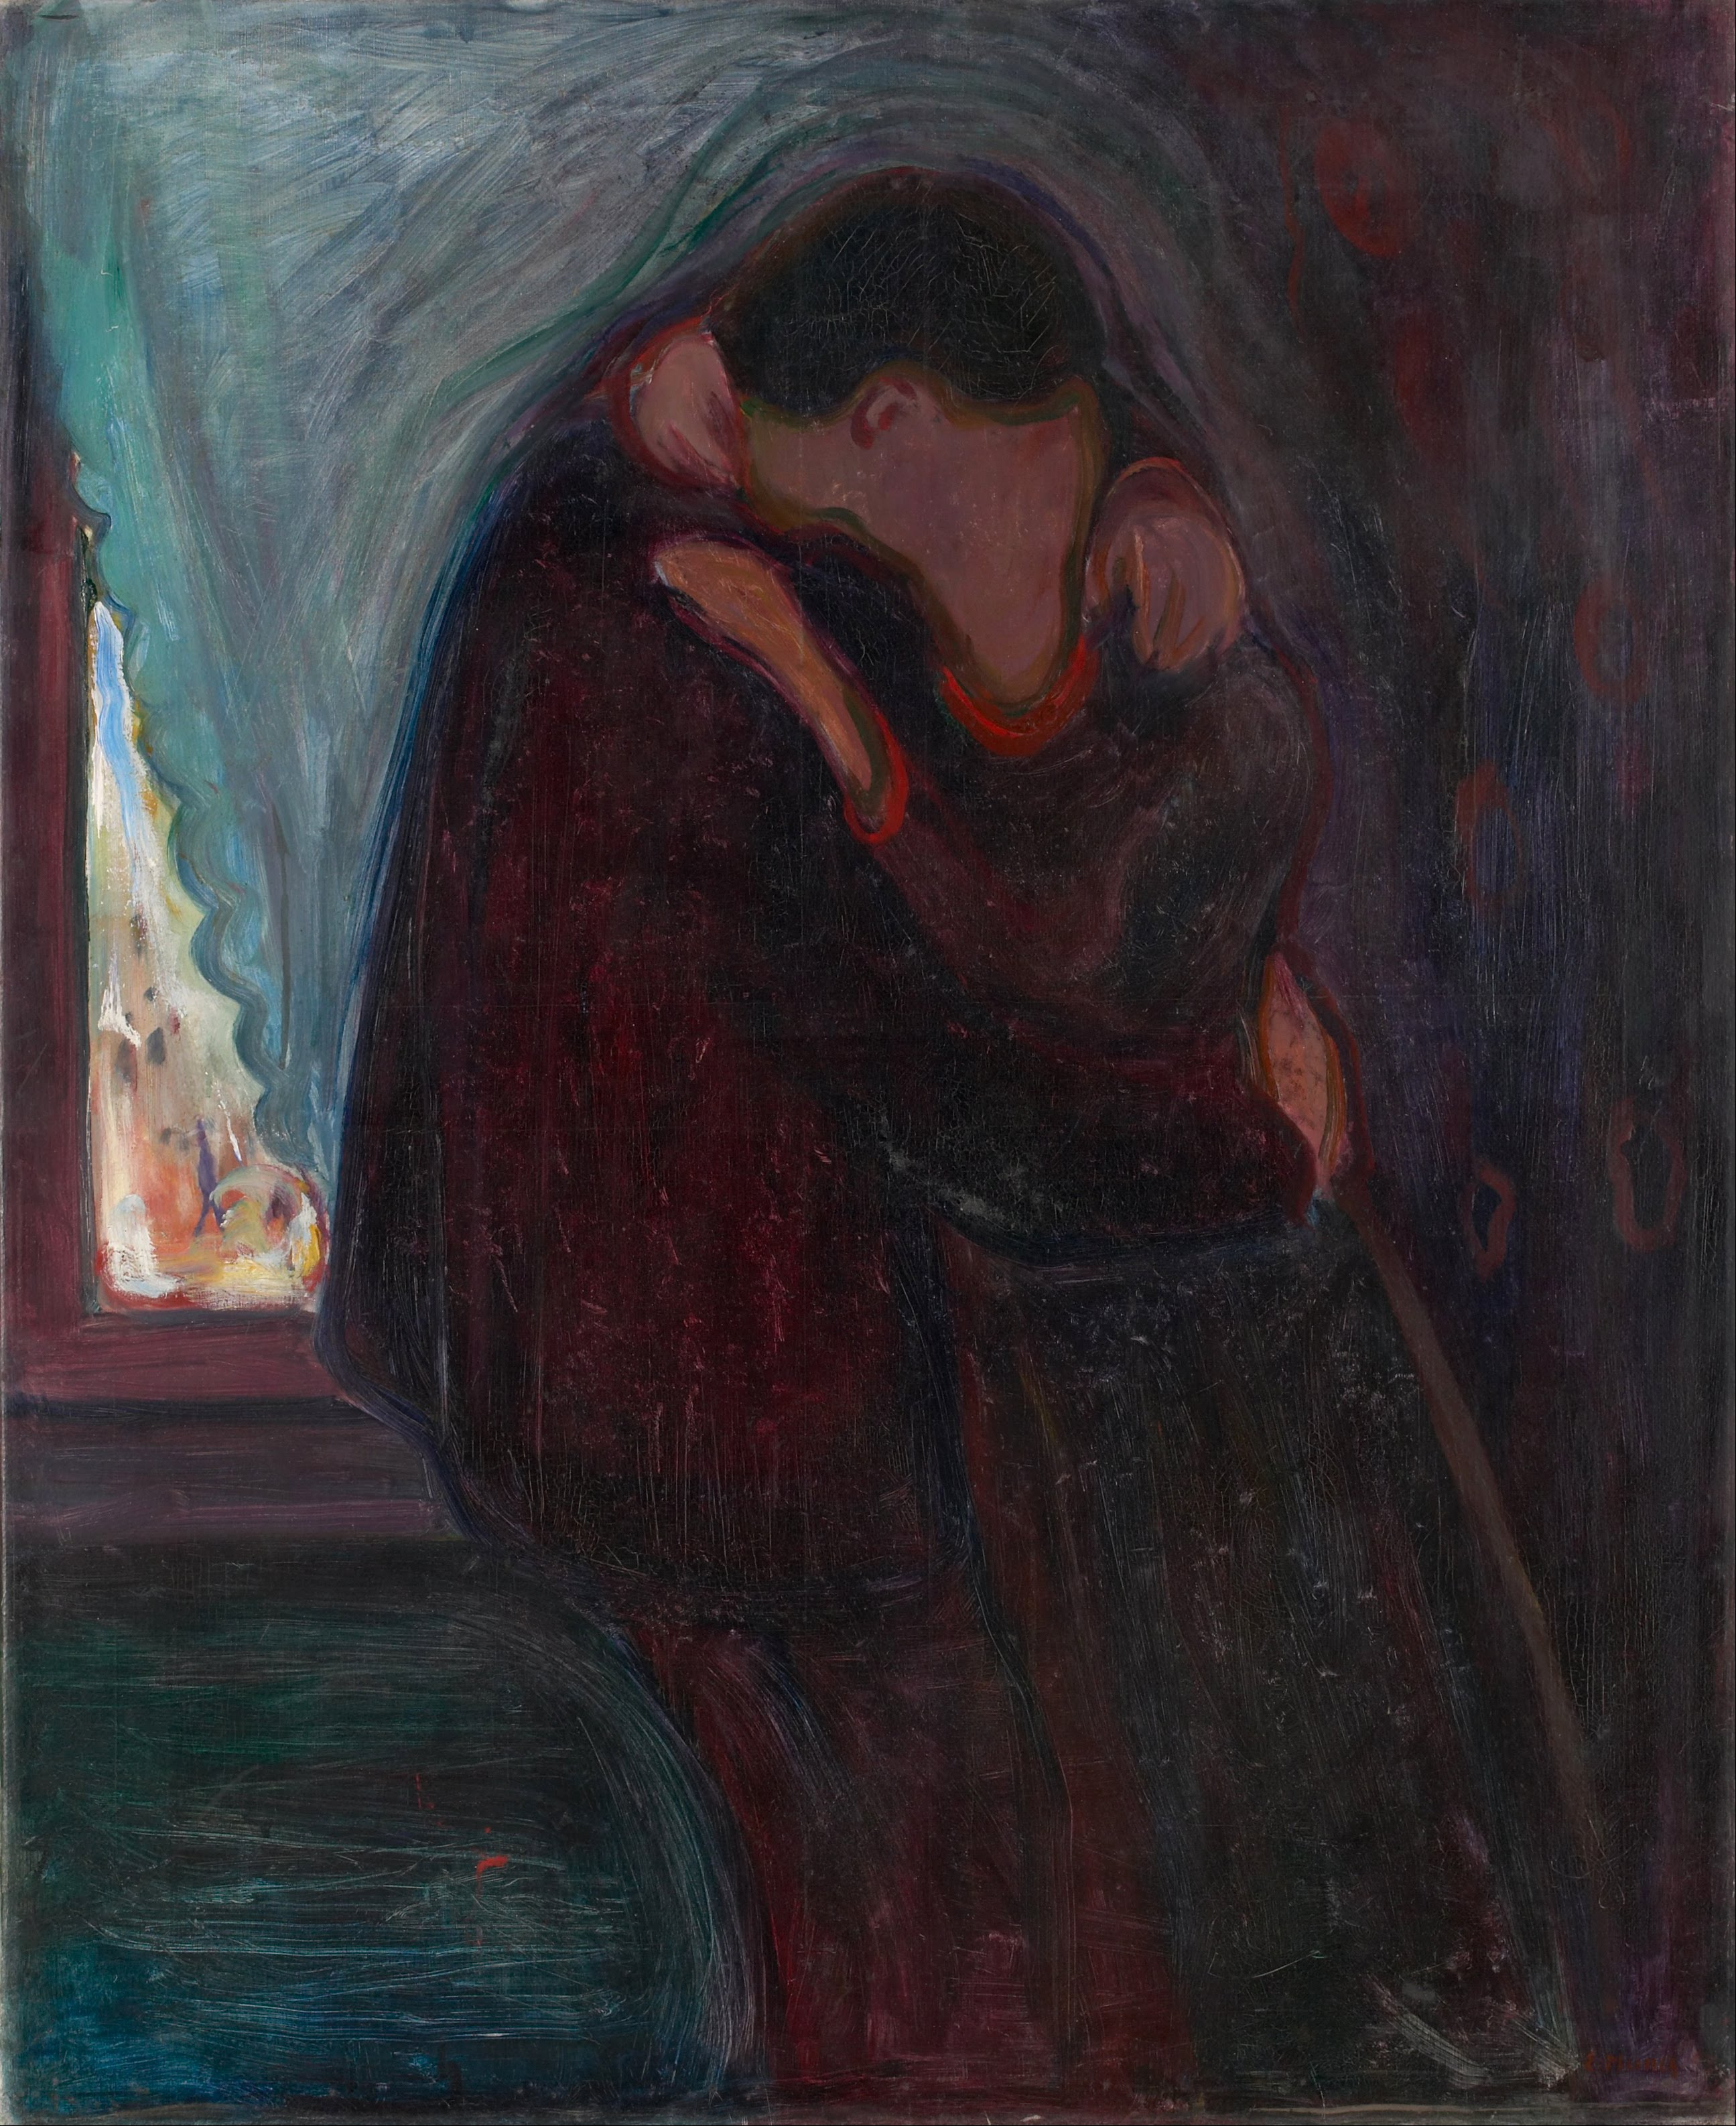 Edvard_Munch_-_The_Kiss_-_Google_Art_Project